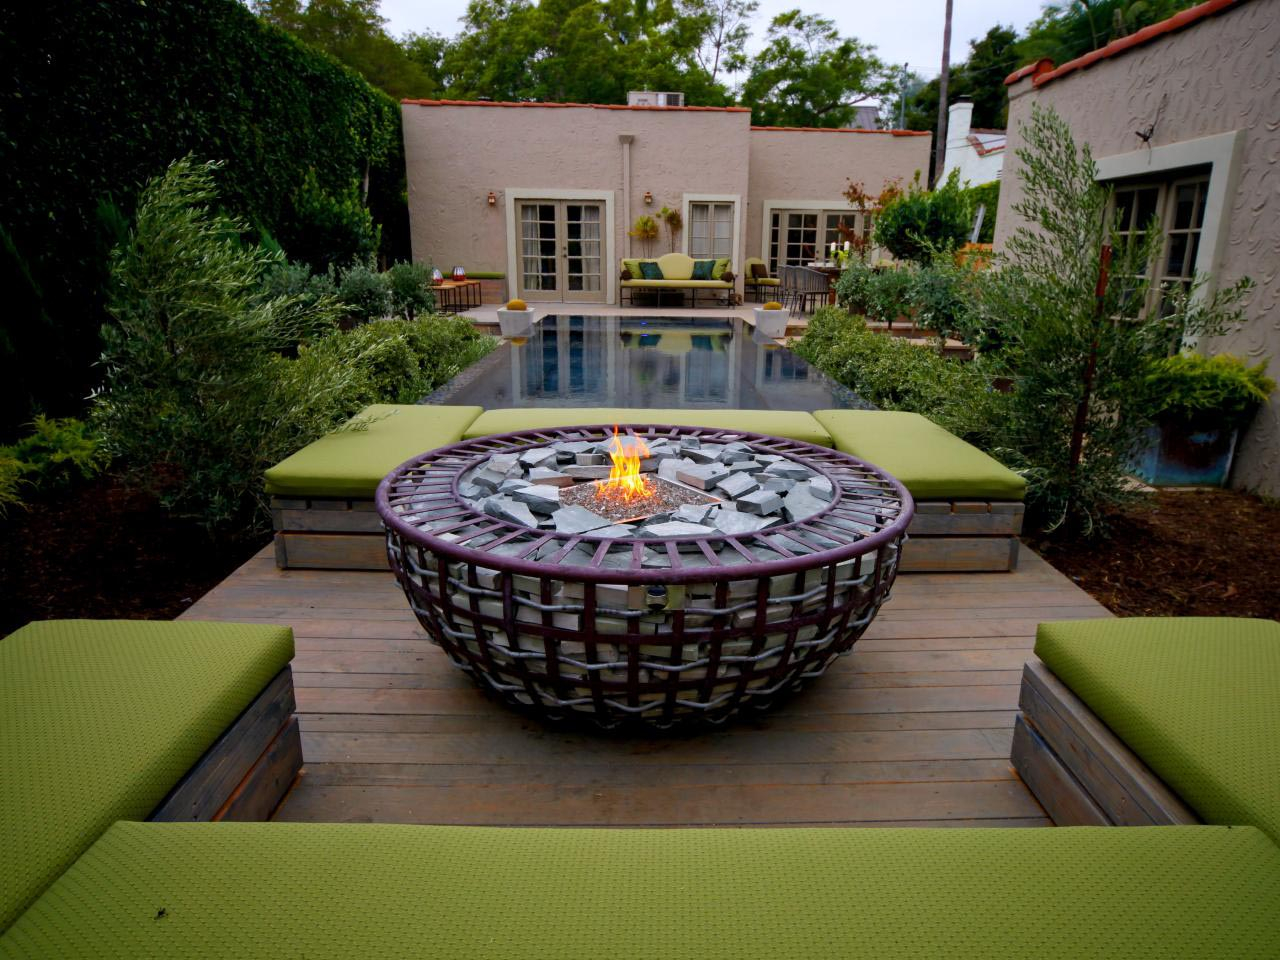 Modern Fire Pit Landscaping Ideas Backyard Planning Design — Iwmissions for Backyard Landscaping Ideas With Fire Pit